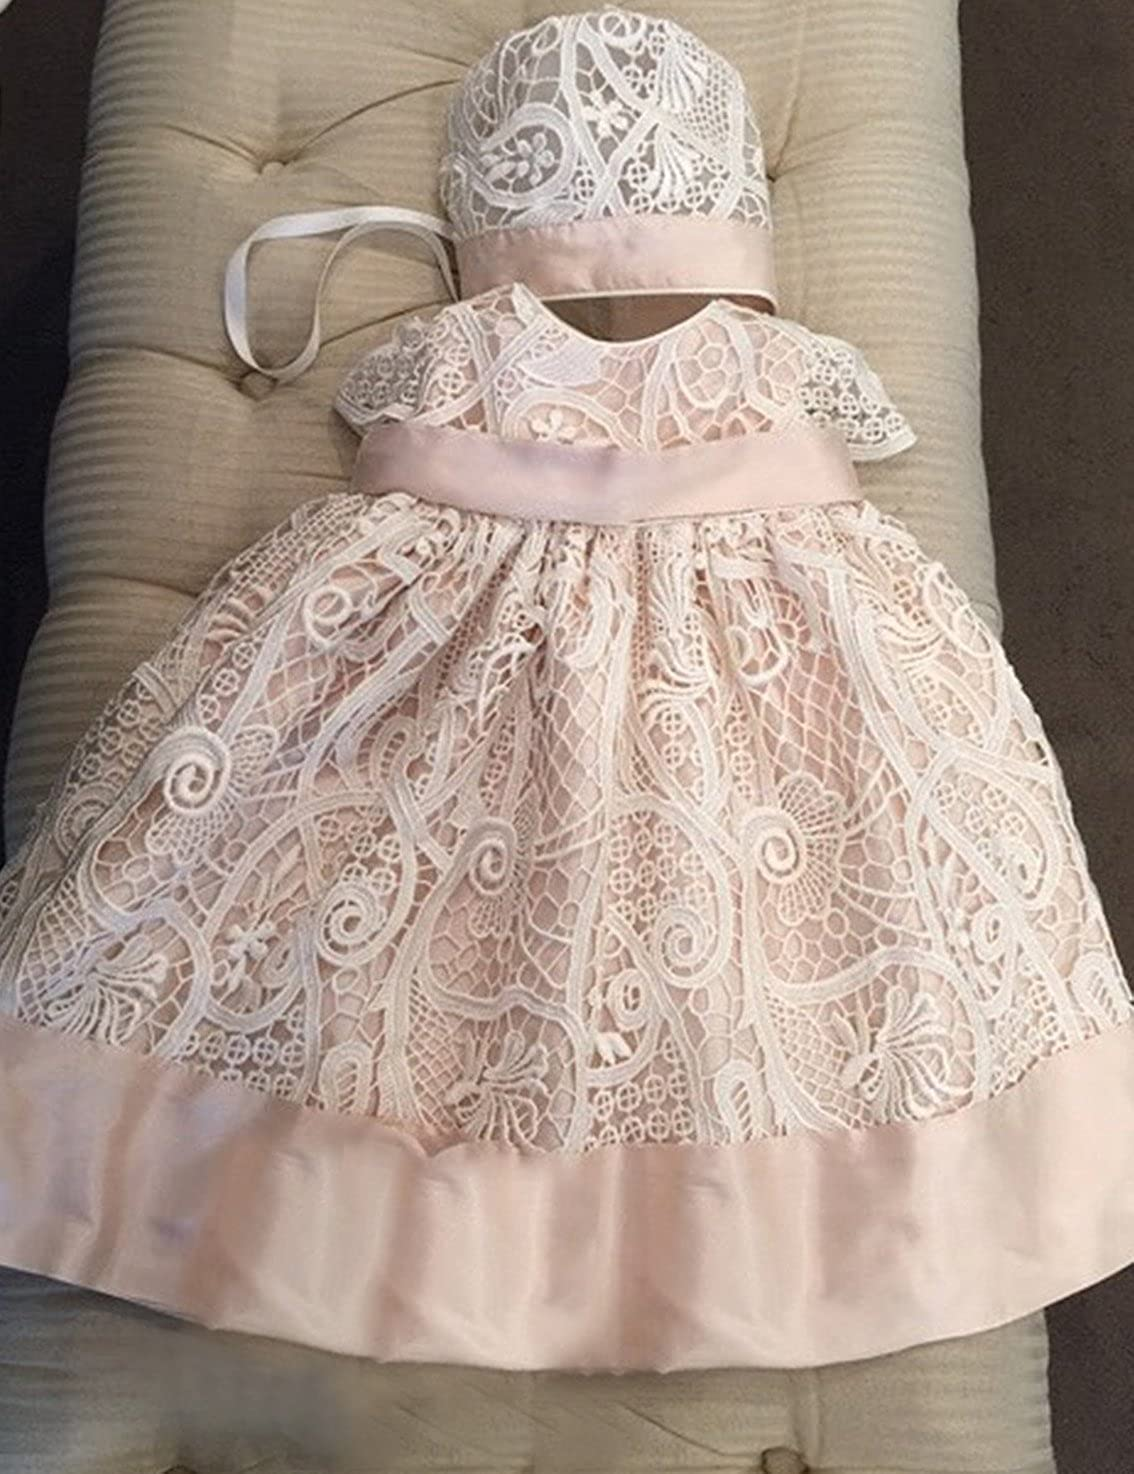 Aorme Champagne Pink Lace Christening Gowns for Girls Baptism Dress 0-24 Months